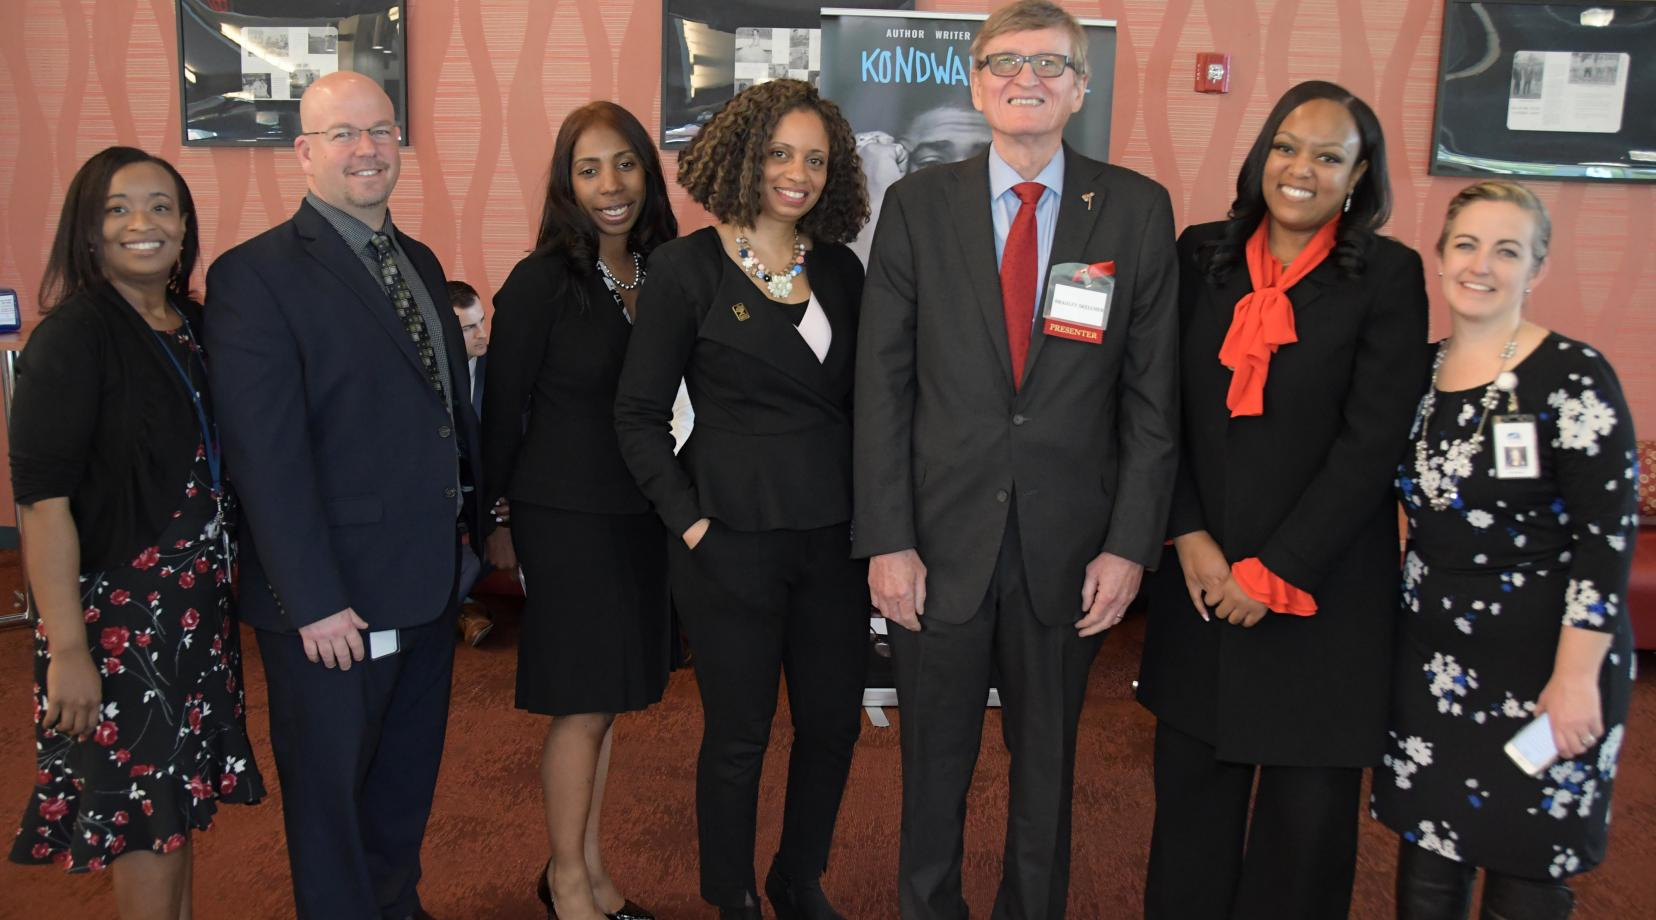 <p>DOE&#039;s Tiffany Cireen Jon Nembauer, Raushawn, Shelly Rouser, retired University Associate Provost Bradley Skelcher and Education Department Chair Shelley Rouser, DOE&#039;s Monique Martin and Shannon Holston gather for a photo during the summit.</p>